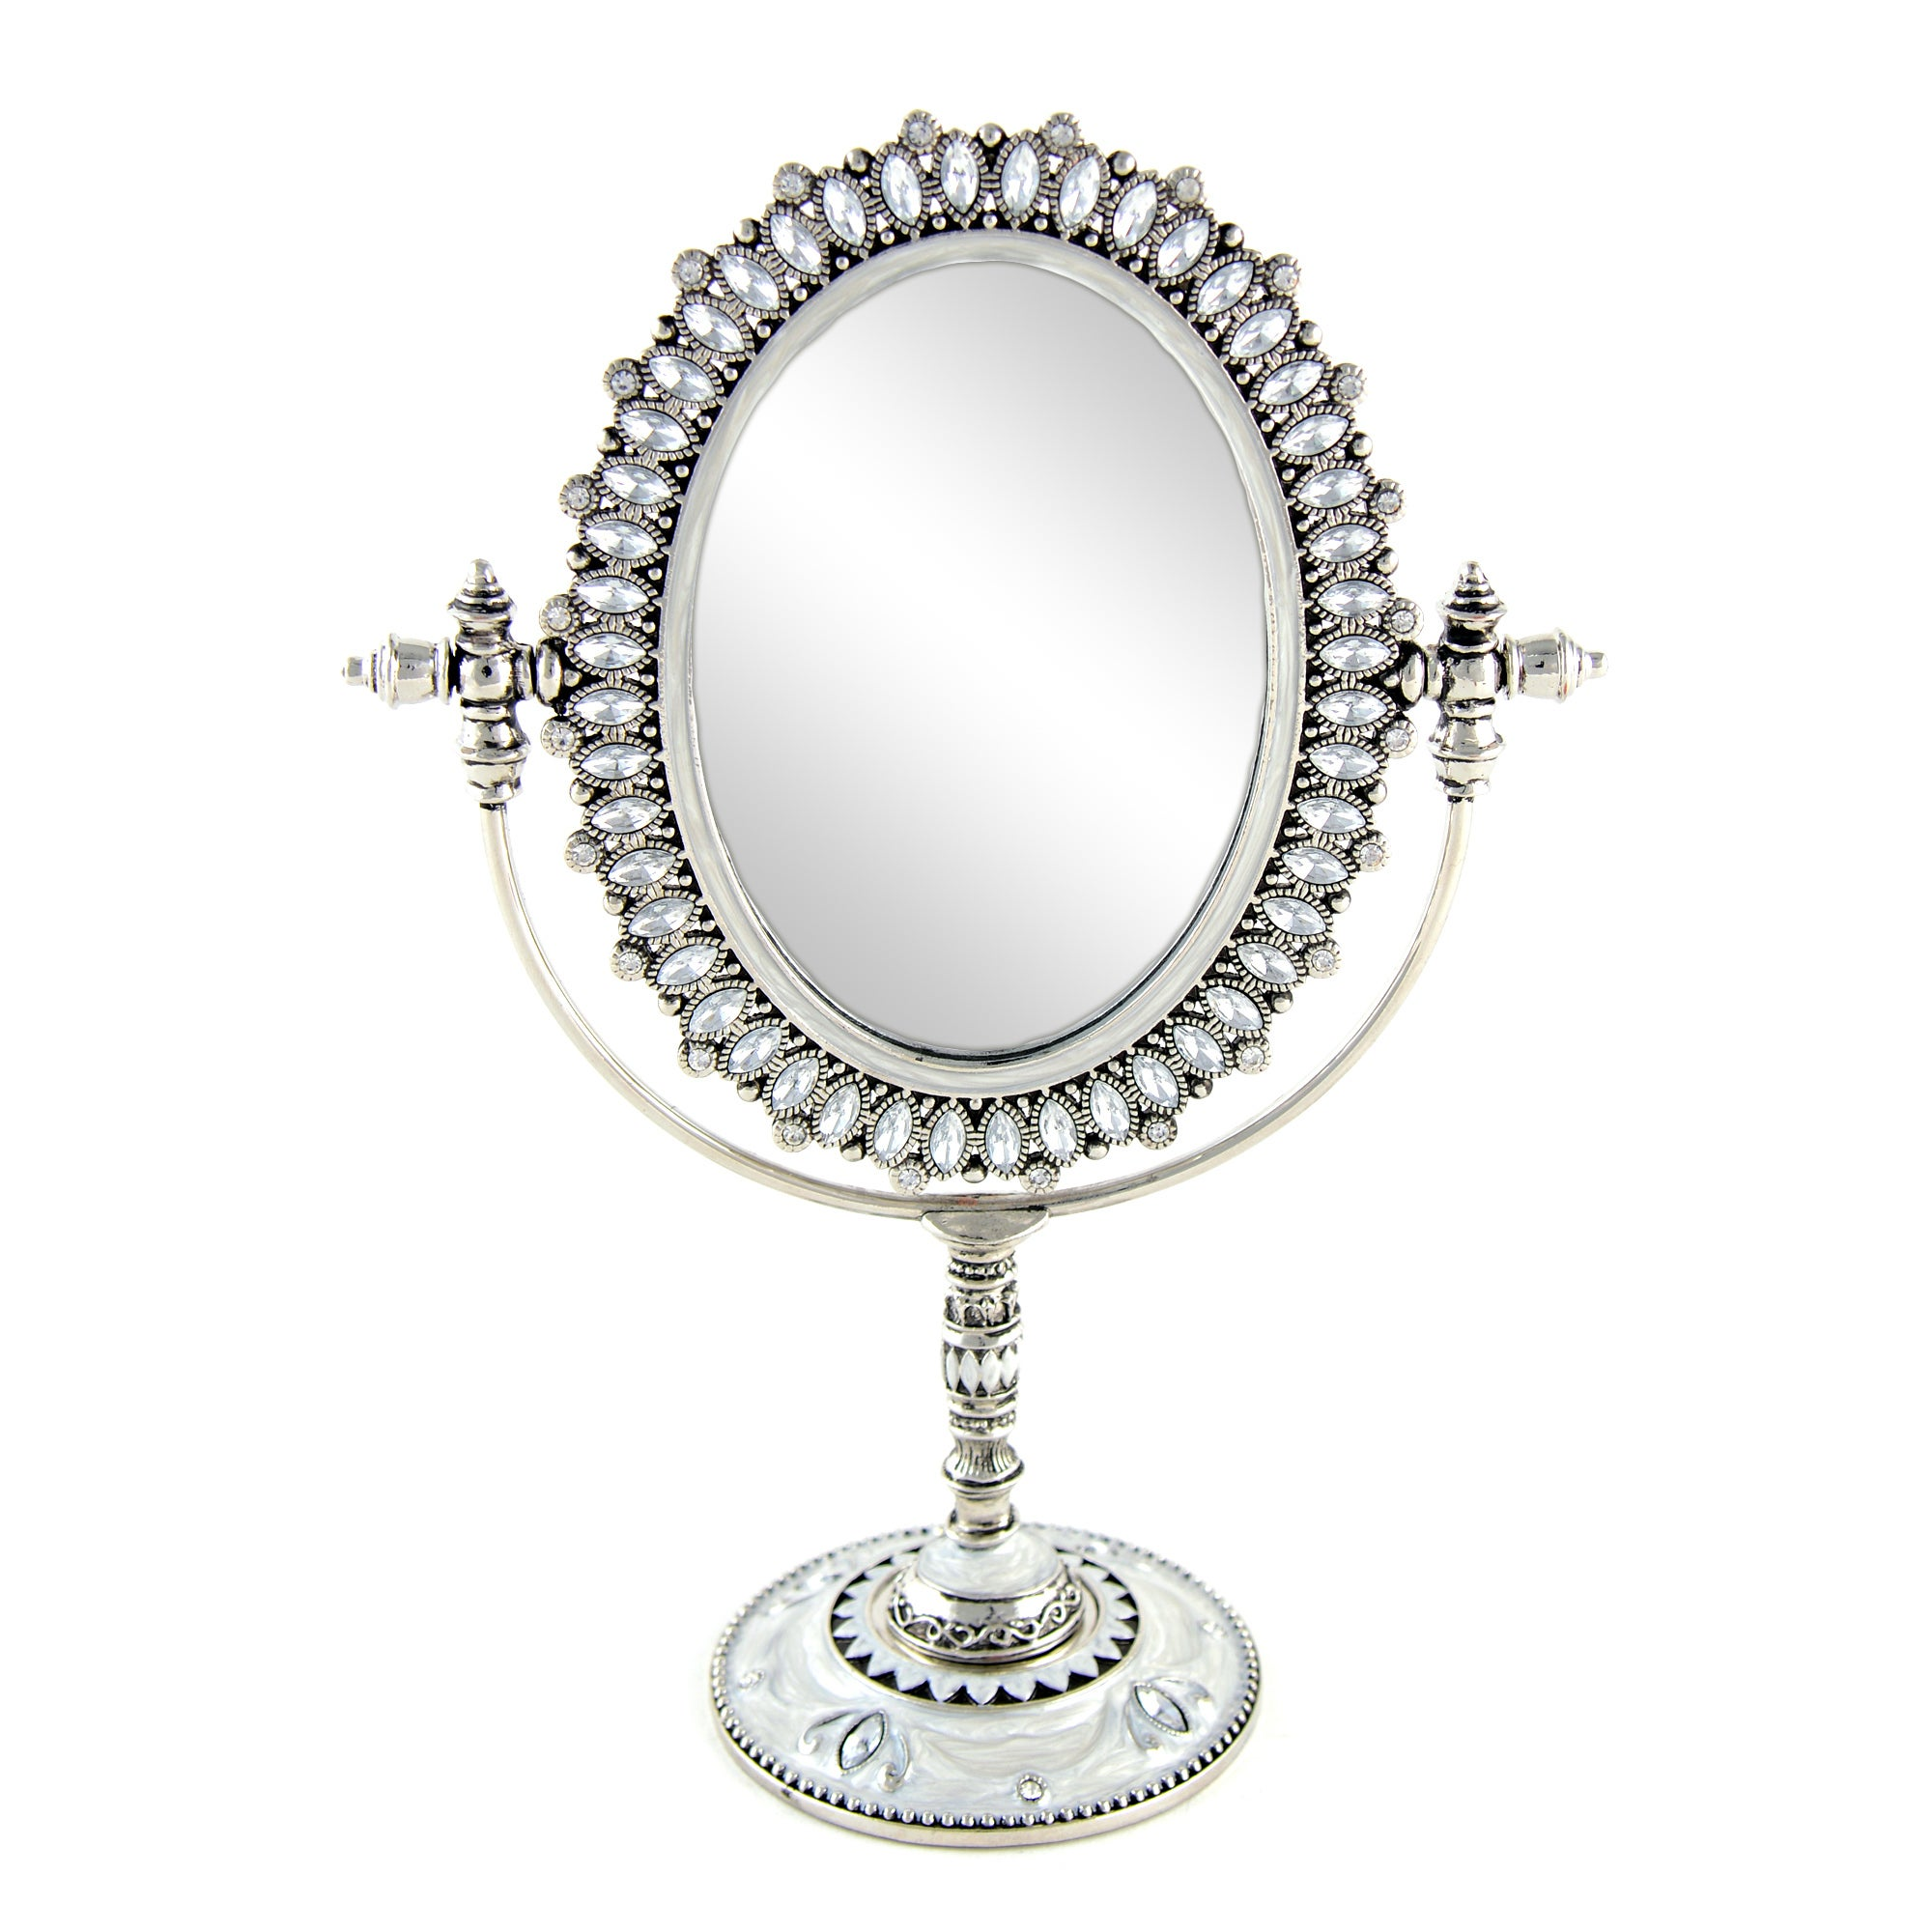 Silver Jewelled Table Top Mirror